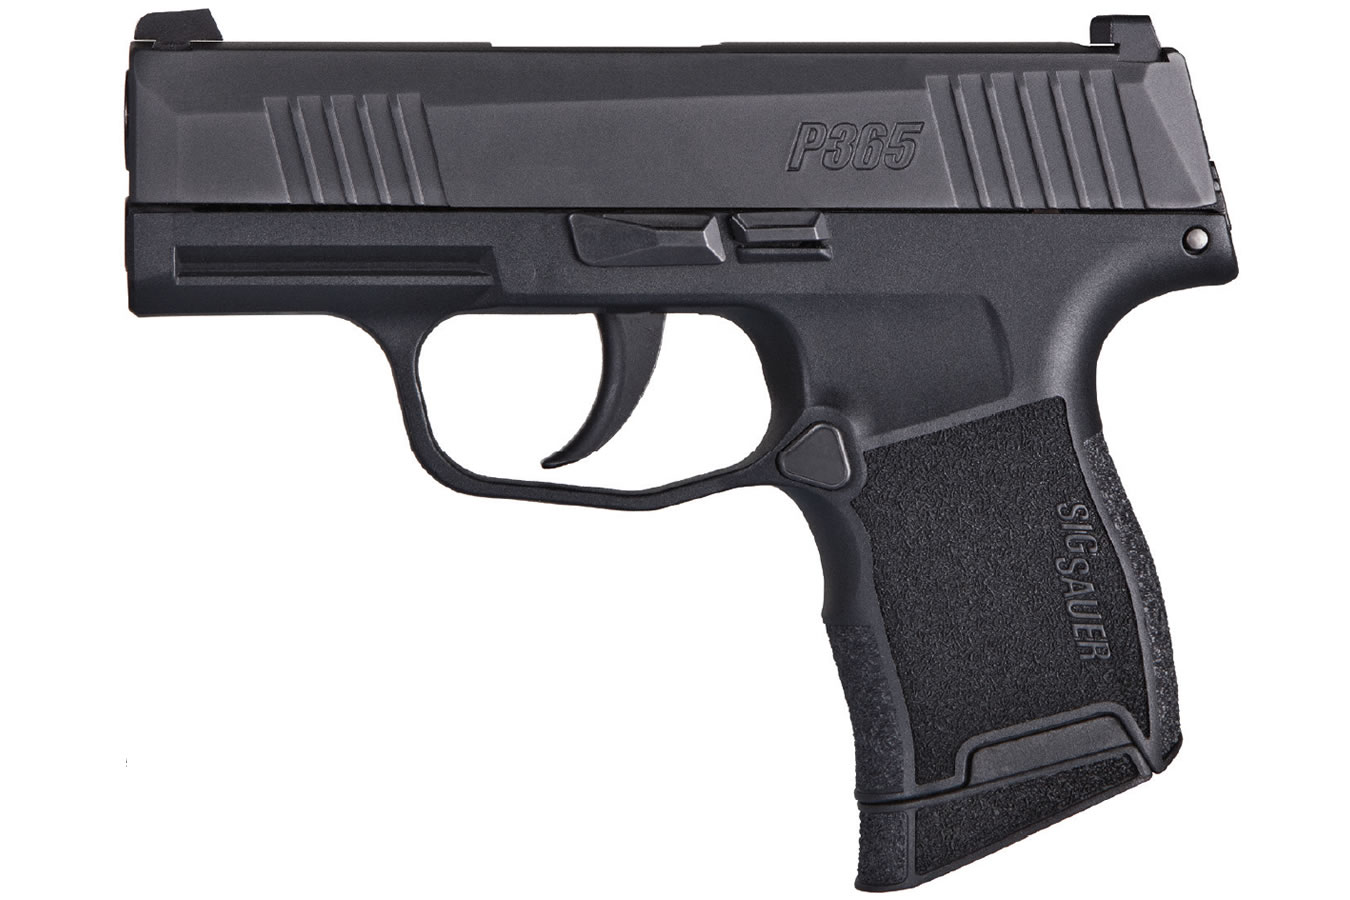 No. 19 Best Selling: SIG SAUER P365 9MM MICRO COMPACT PISTOL